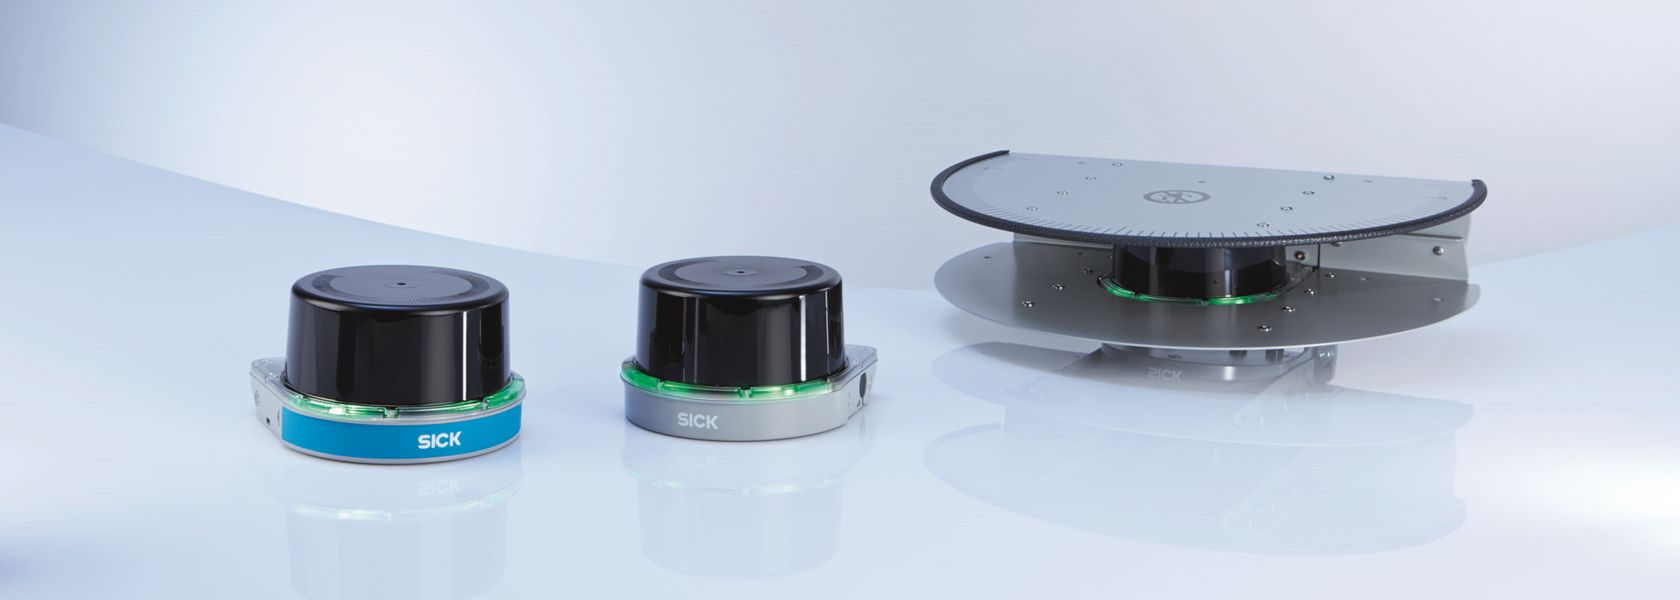 SICK launches new LiDAR sensor technology